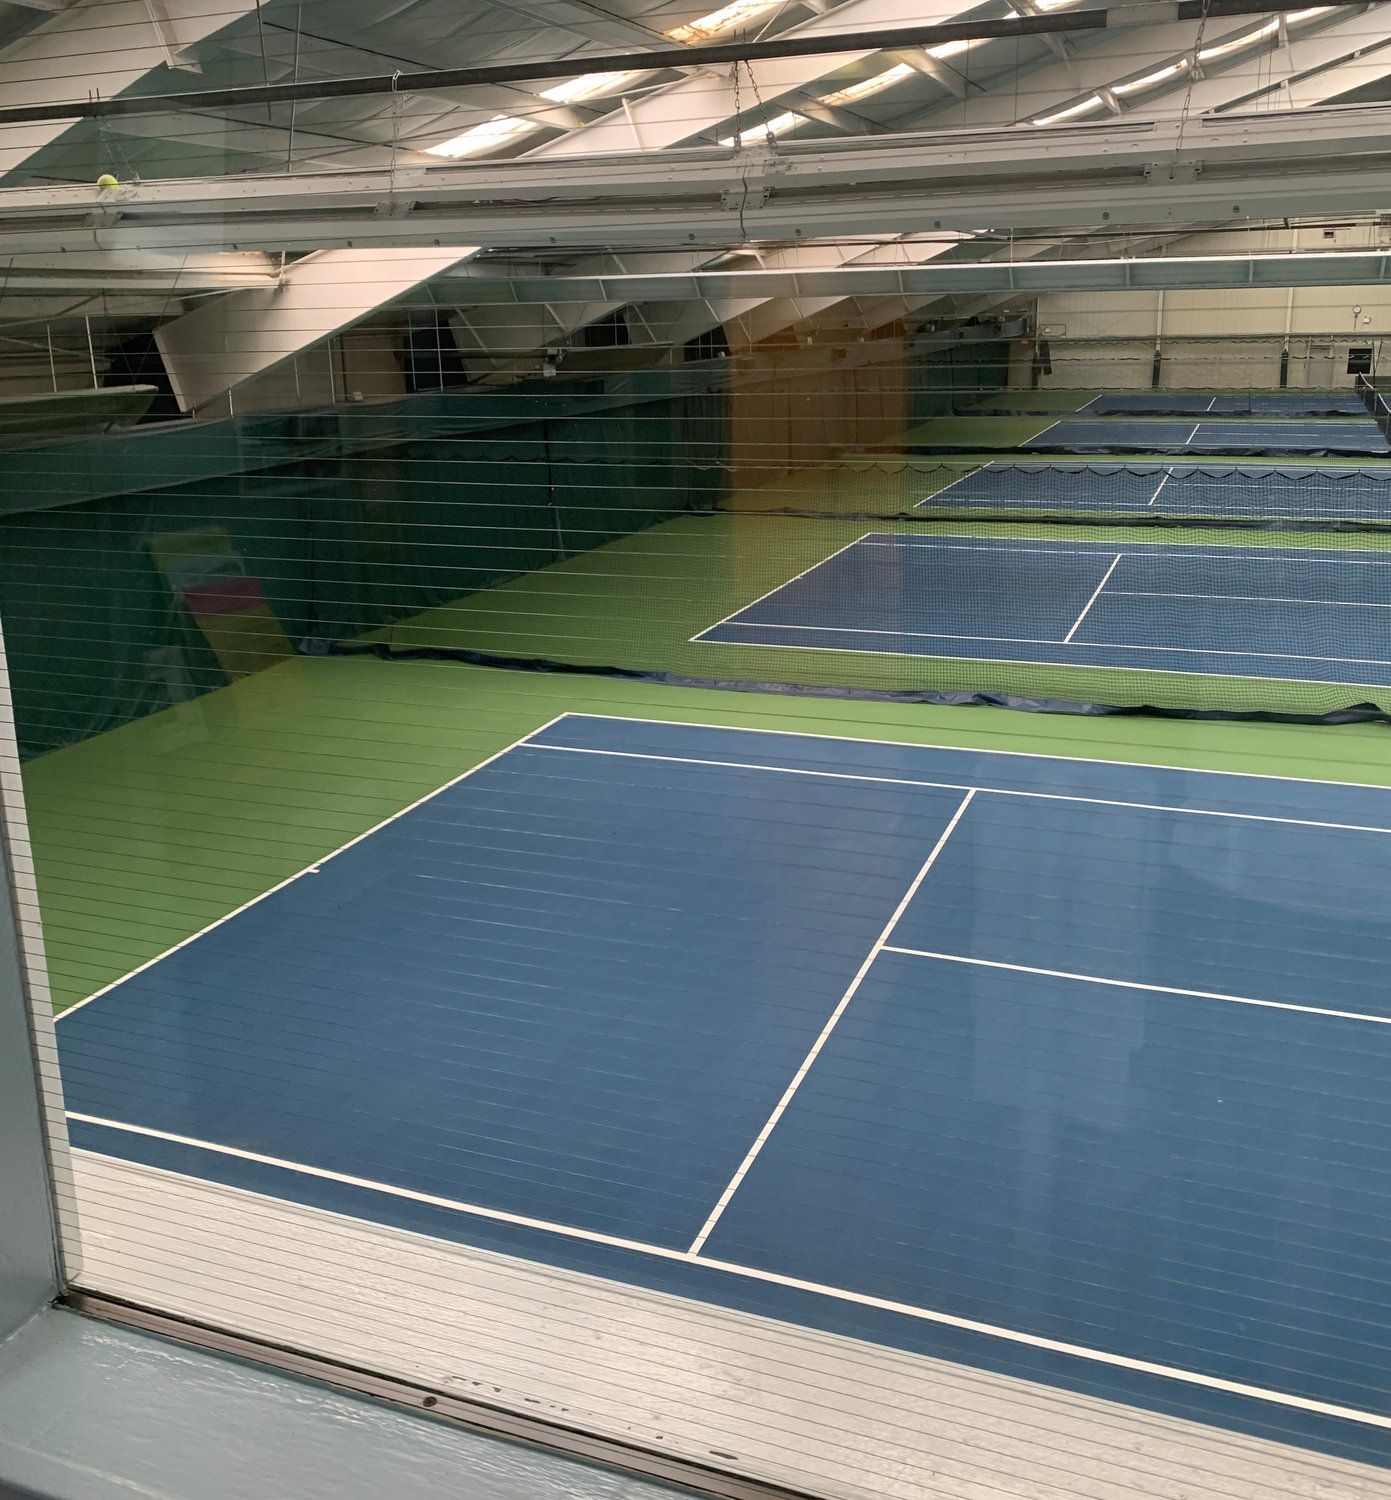 Unlike outdoor tennis facilities, Carefree Raquet Club, which features seven tennis courts and four pickleball playing surfaces, wasn't permitted to open May 15.